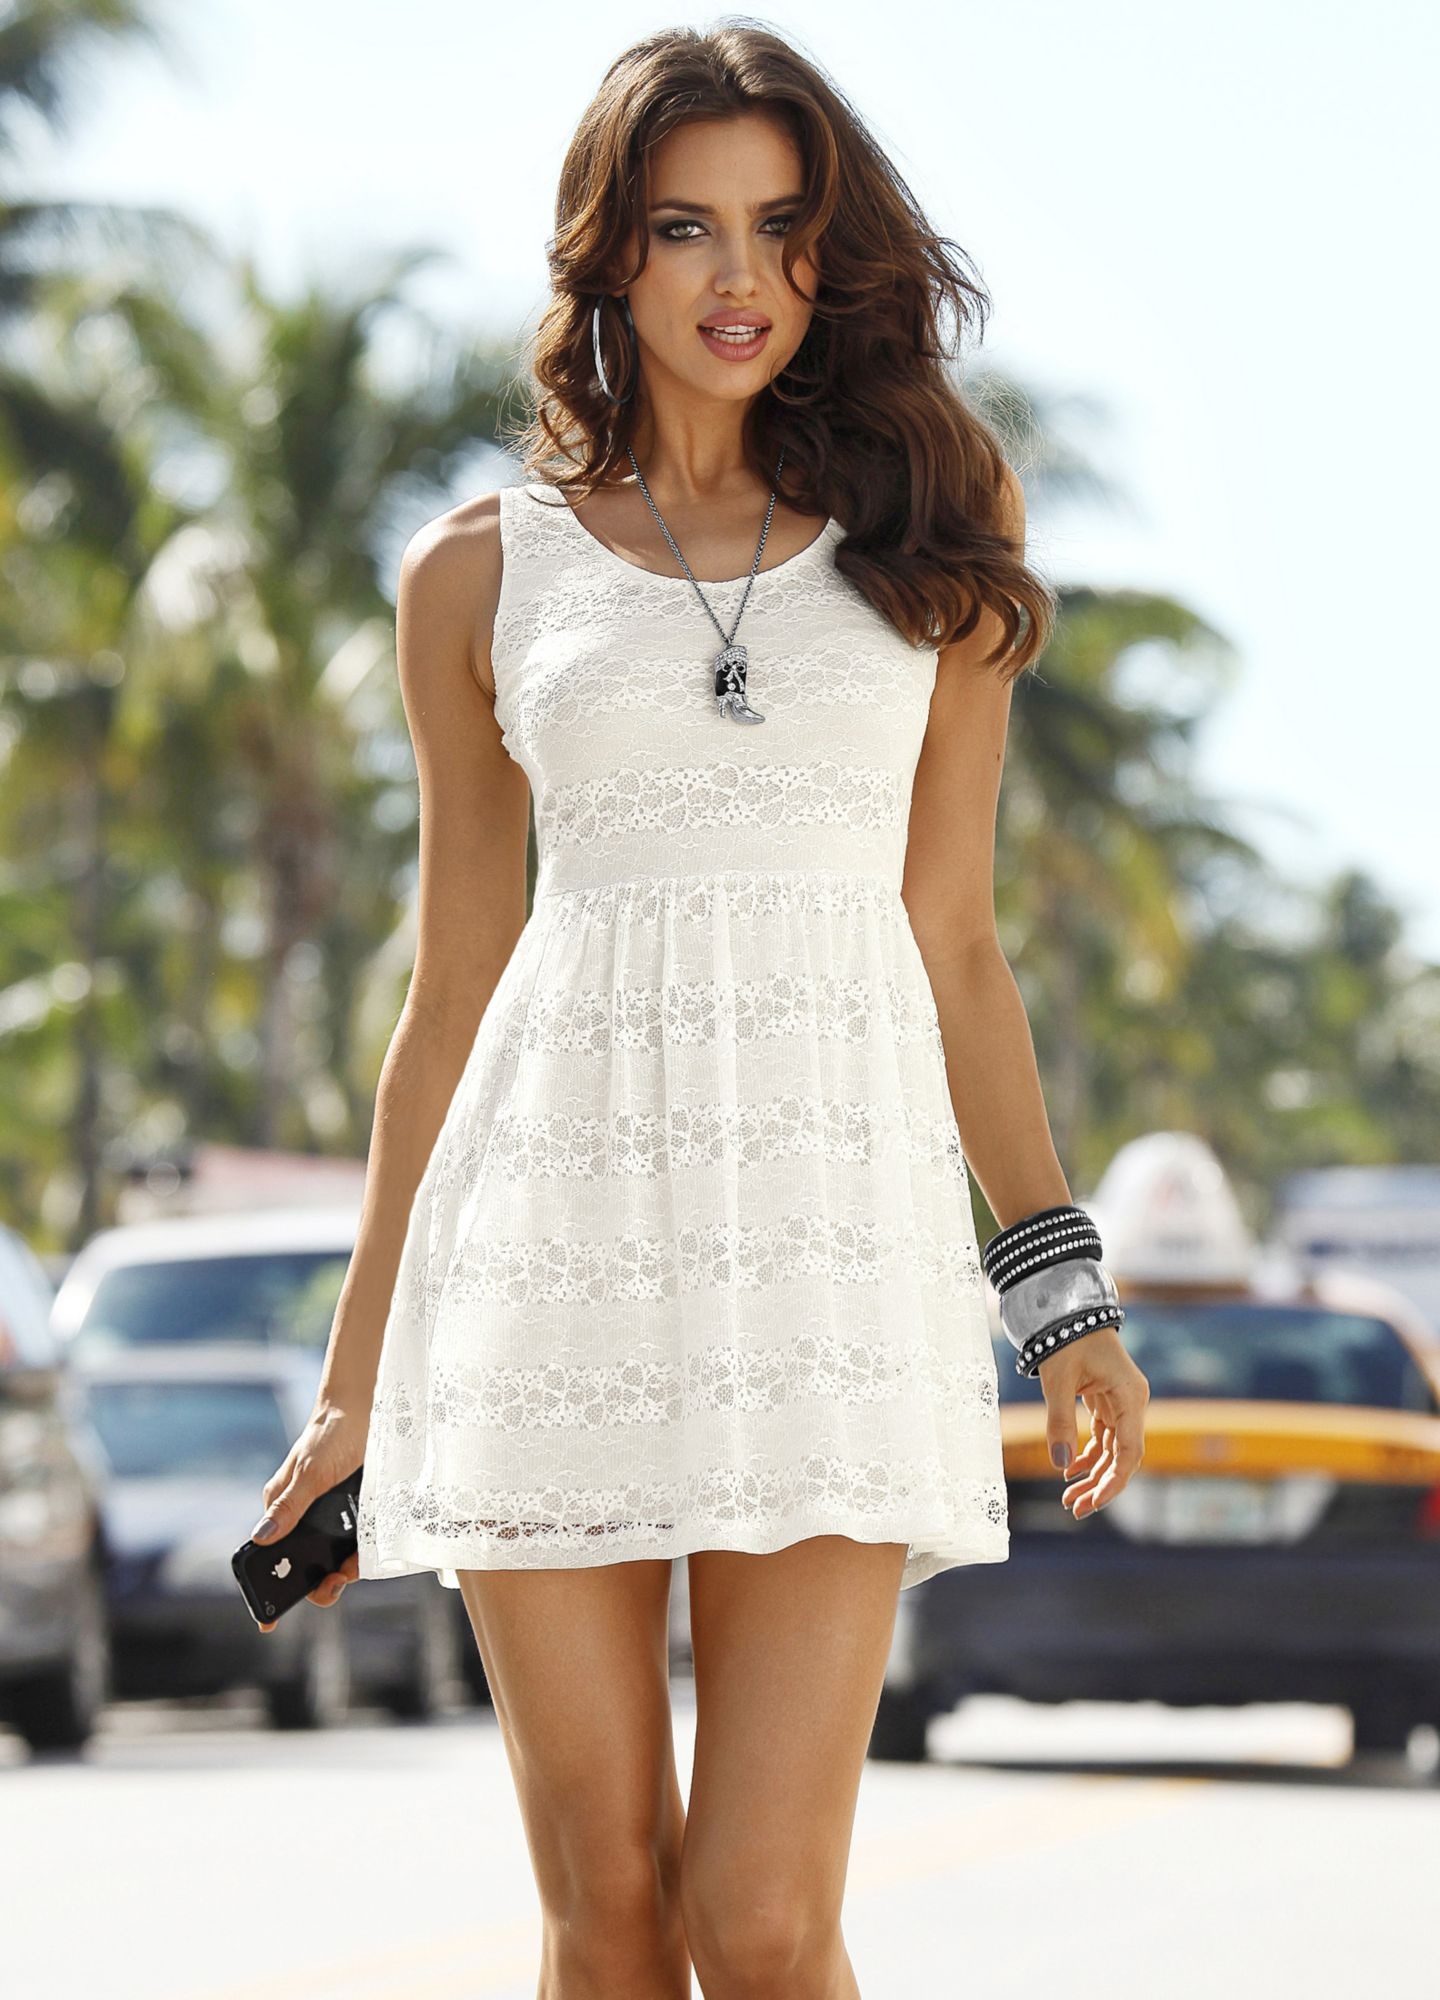 Dresses Shopping, Design Ideas, Pictures And Inspiration